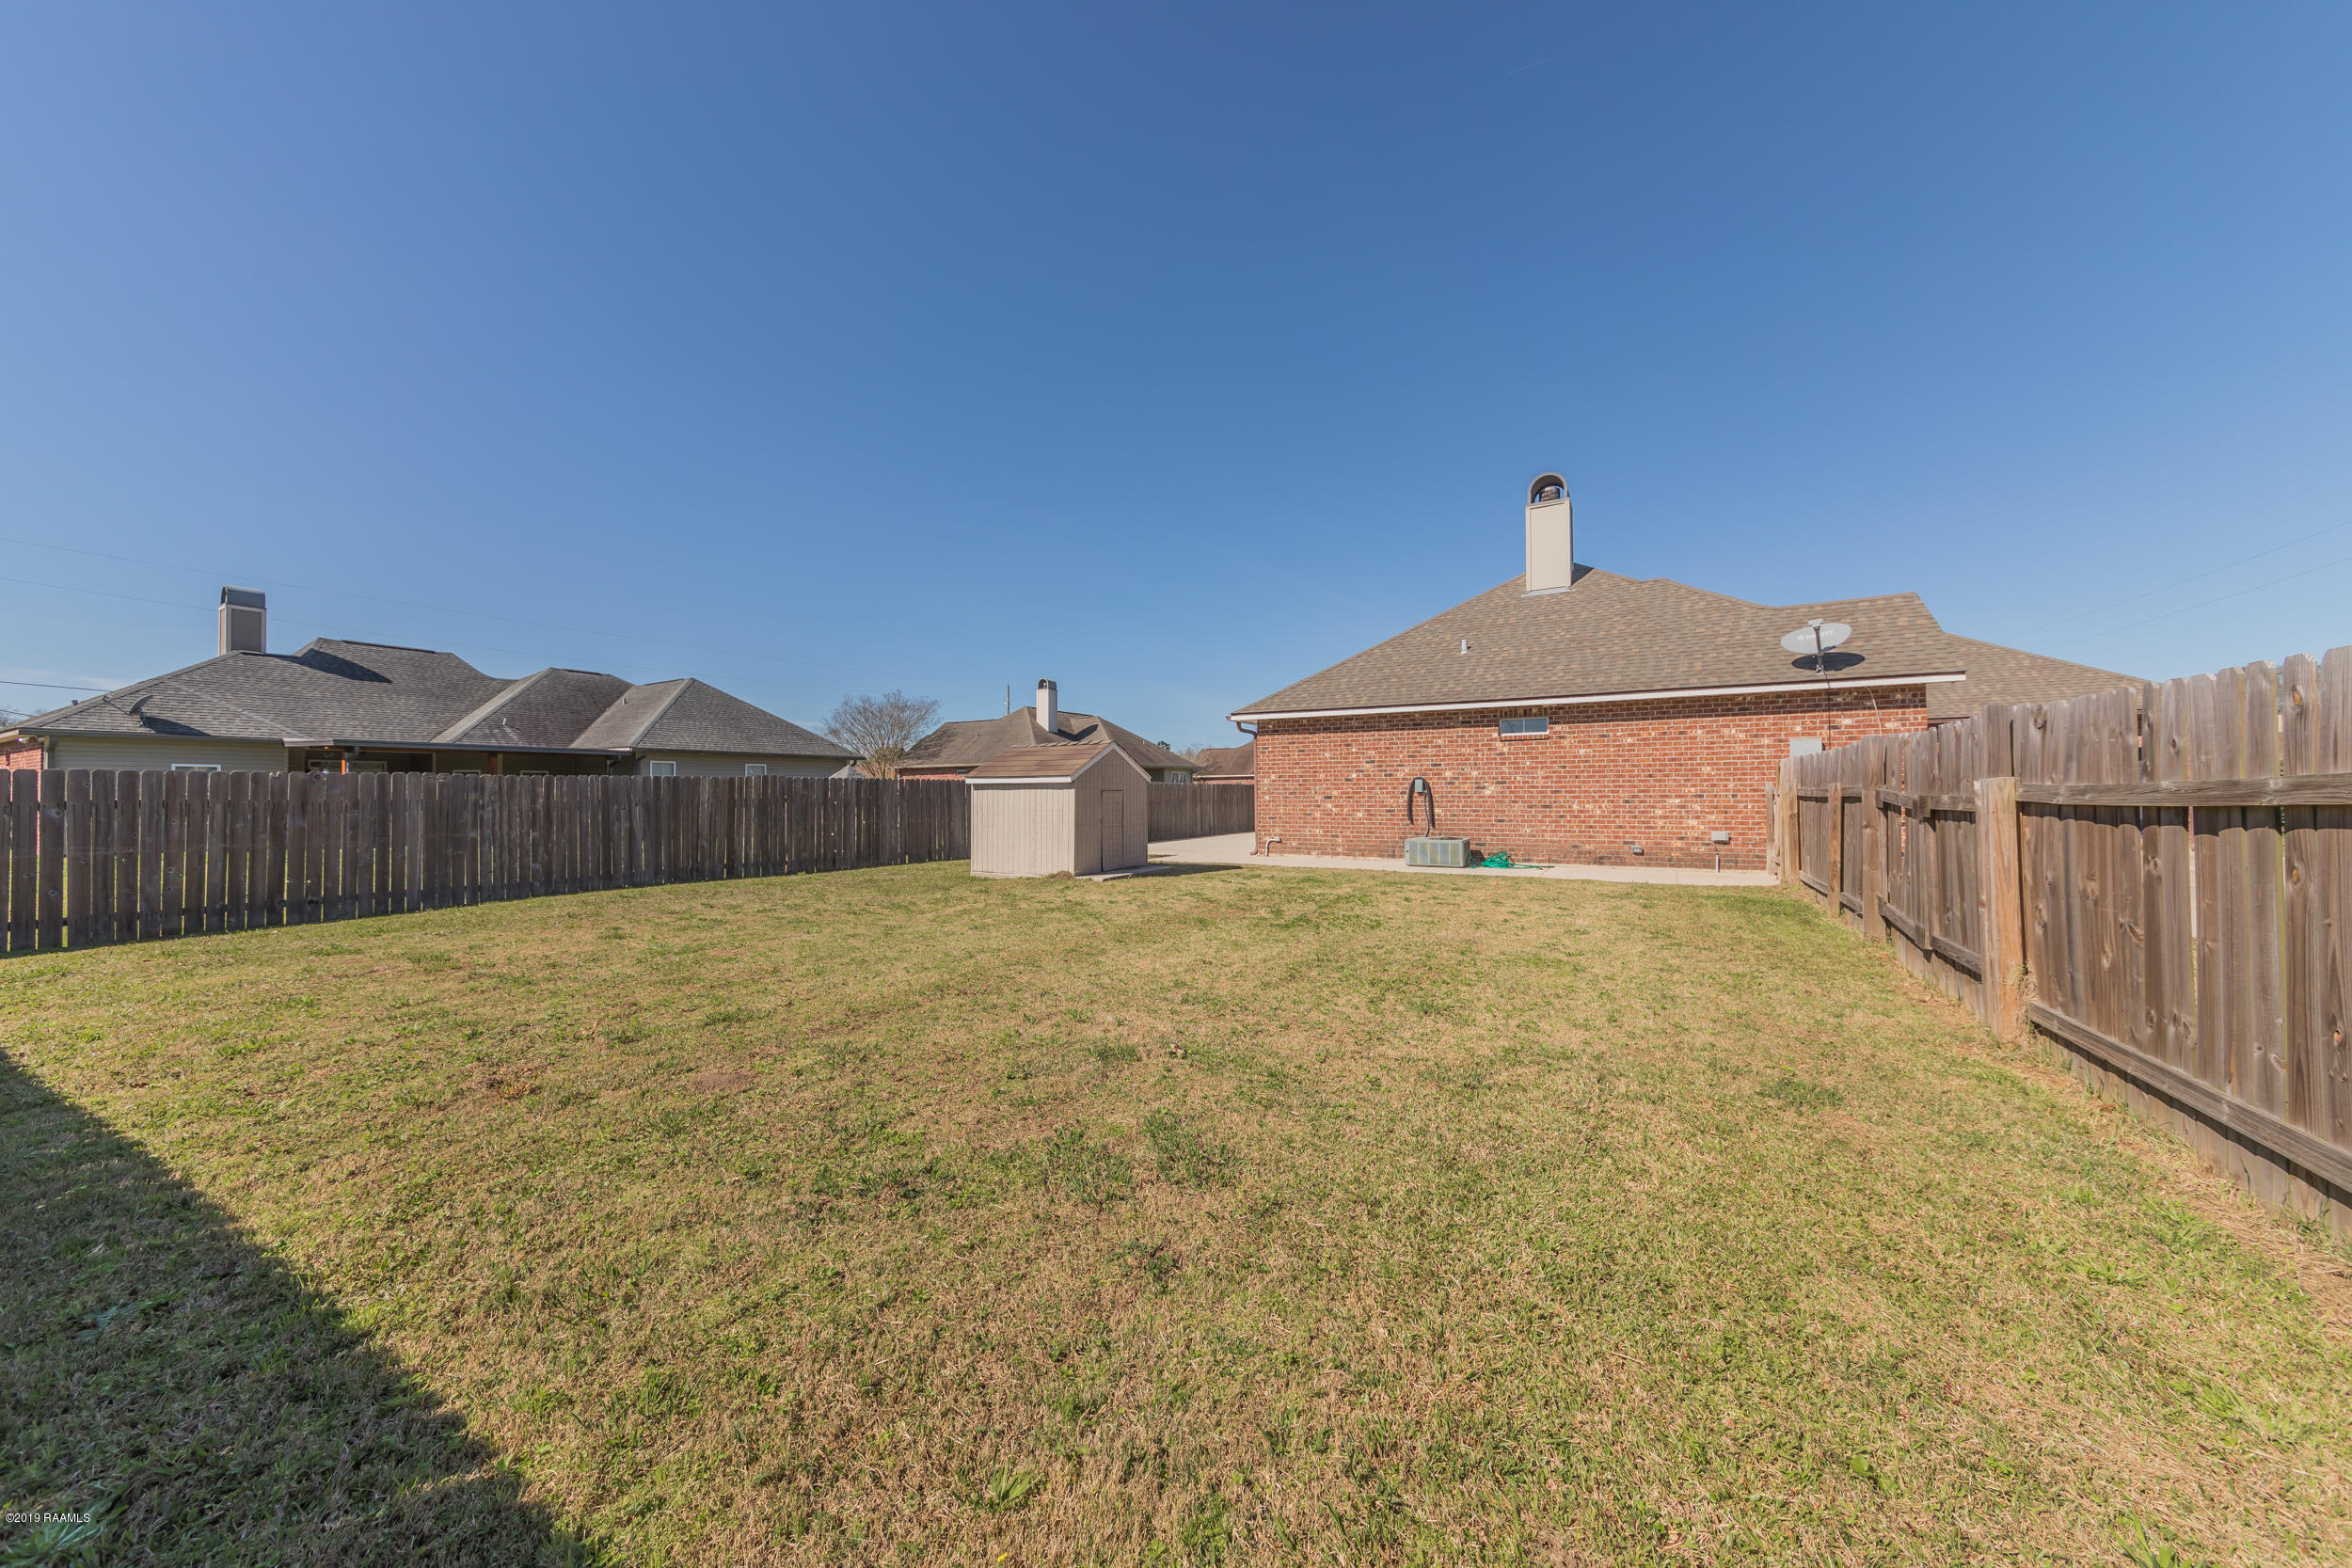 205 Bridgeport Lane, Carencro, LA 70520 Photo #27